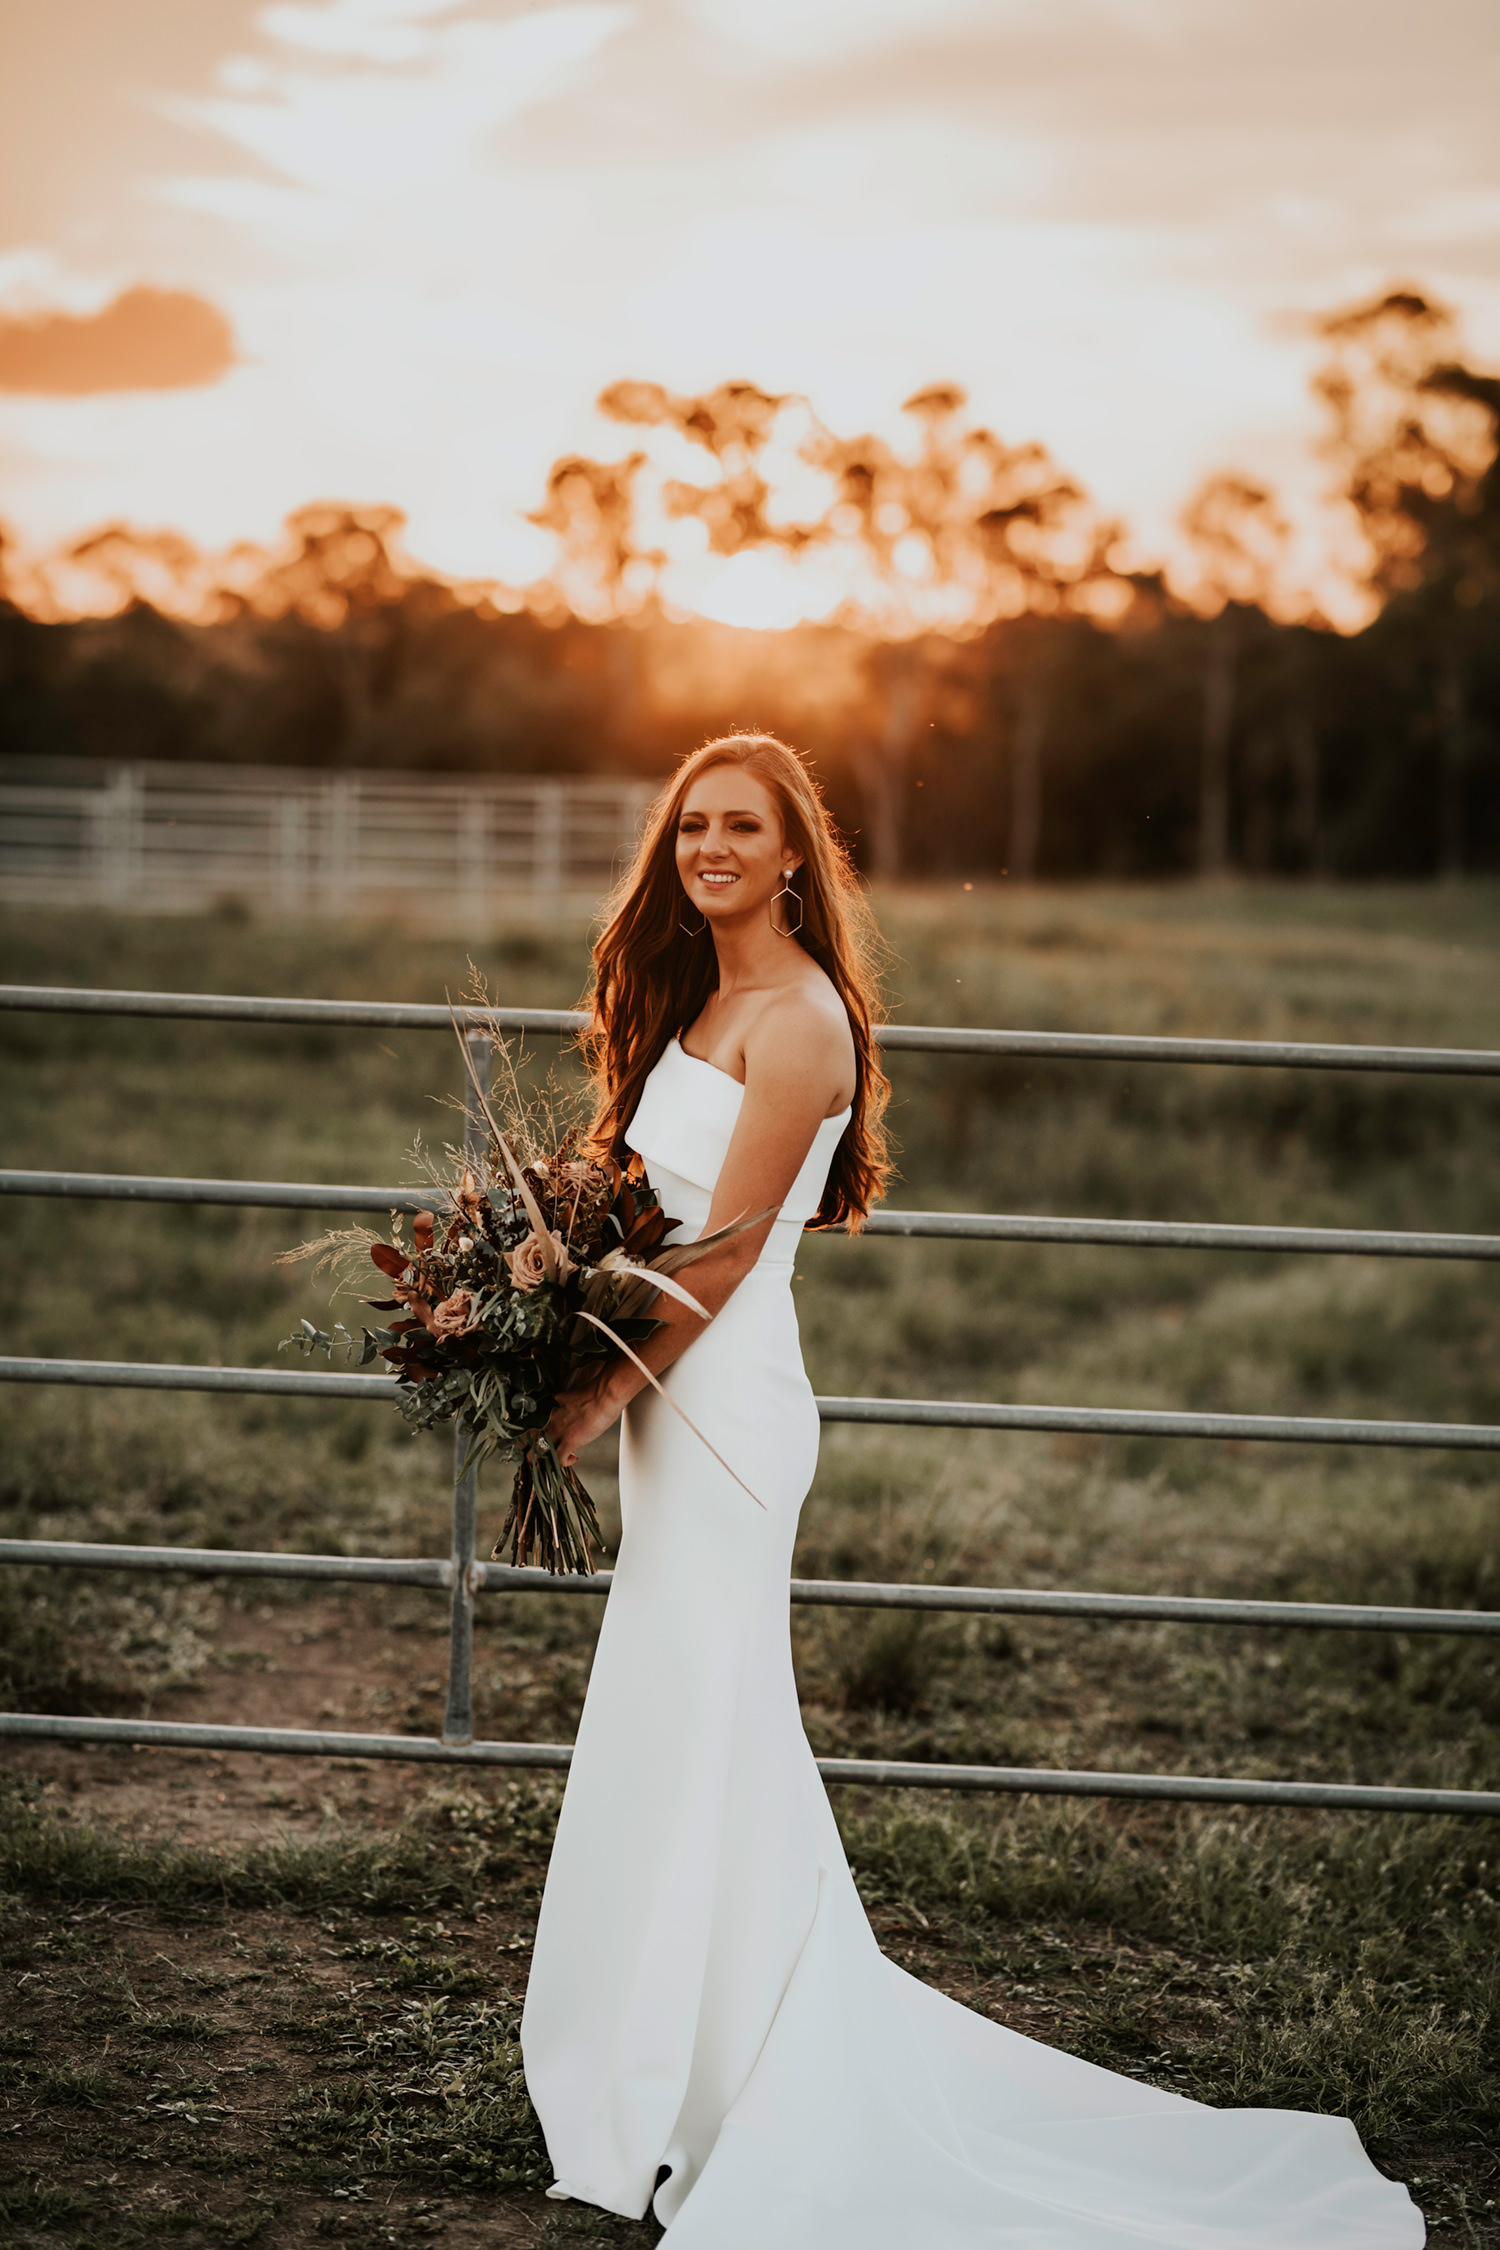 Bride at cattle yards at sunset